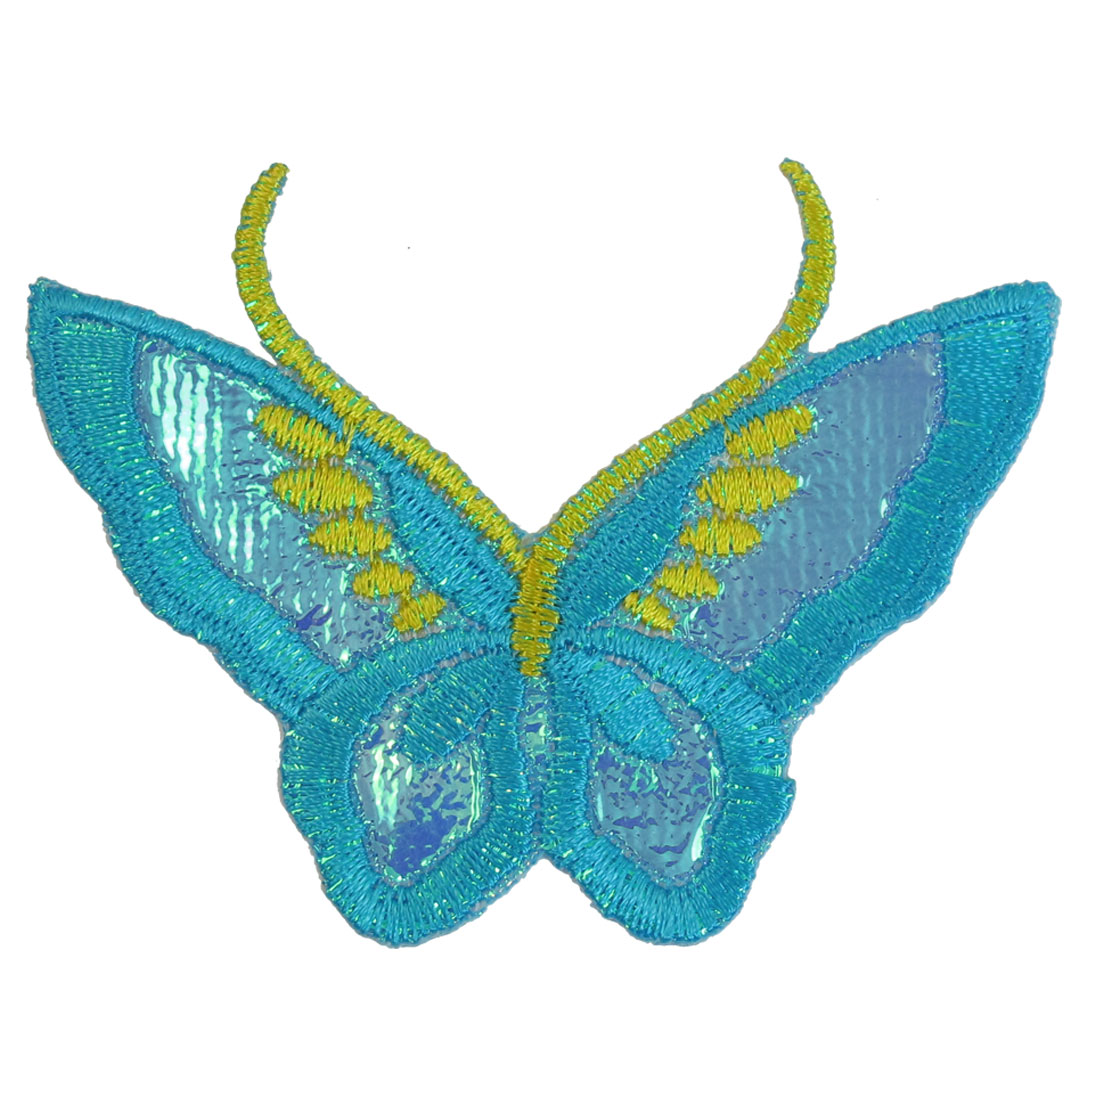 Reflective Blue Yellow Butterfly Shaped Embroidered Iron On Applique Patch